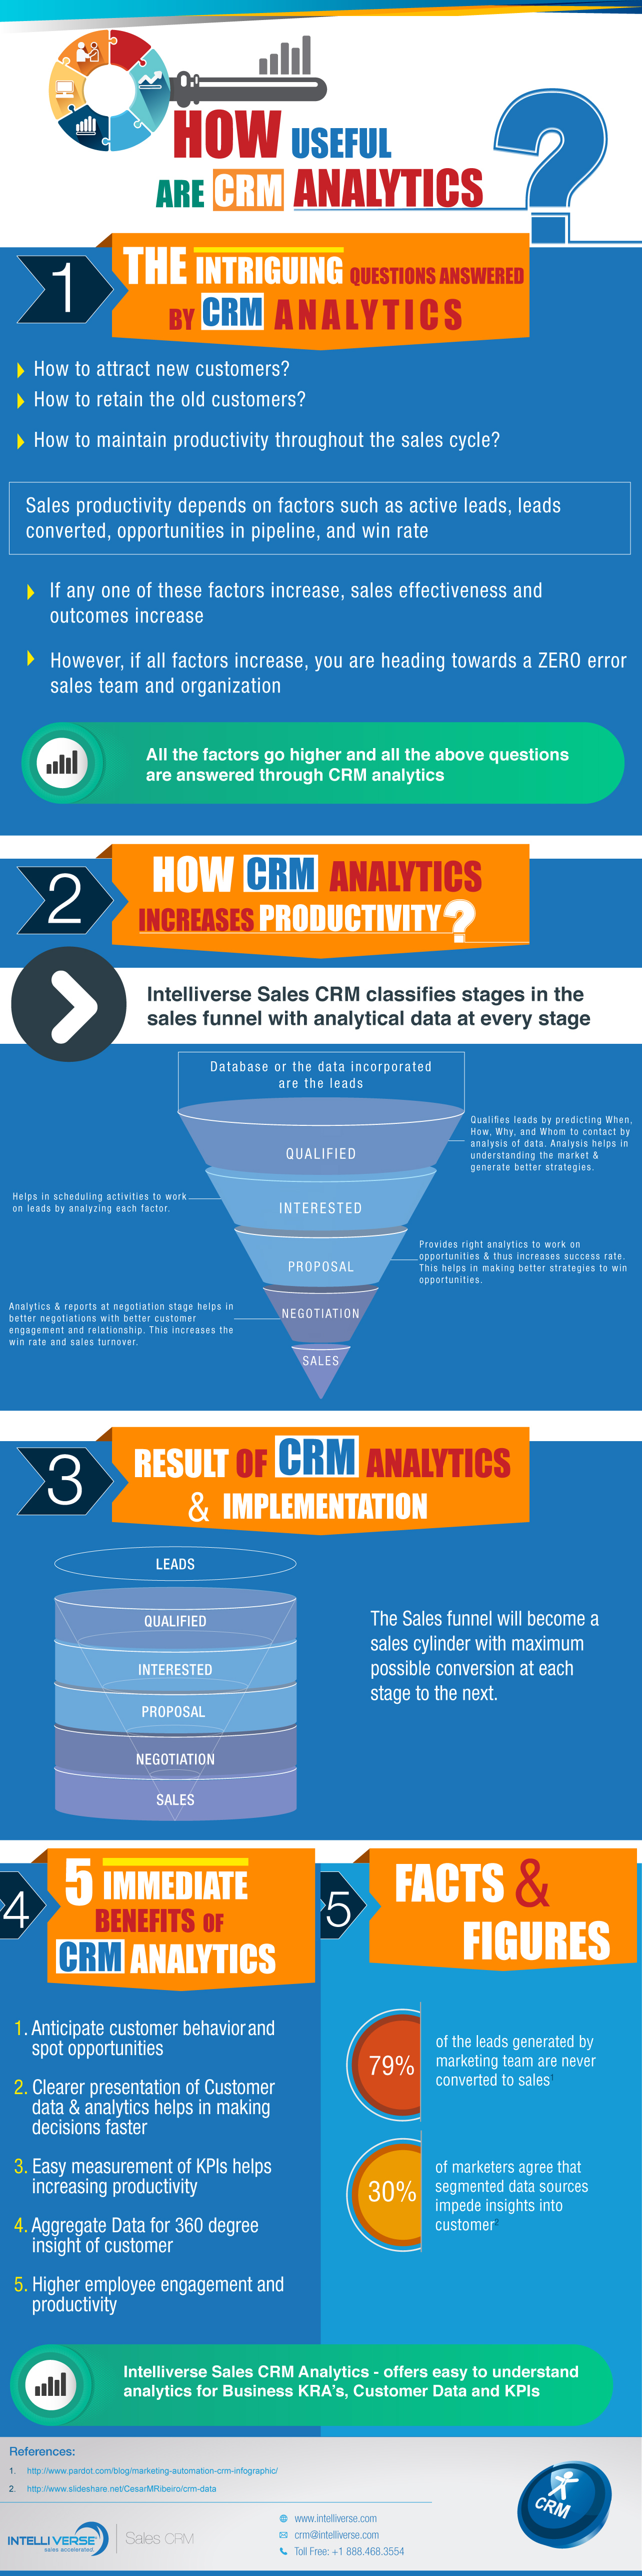 How useful are #CRM analytics #Infographic